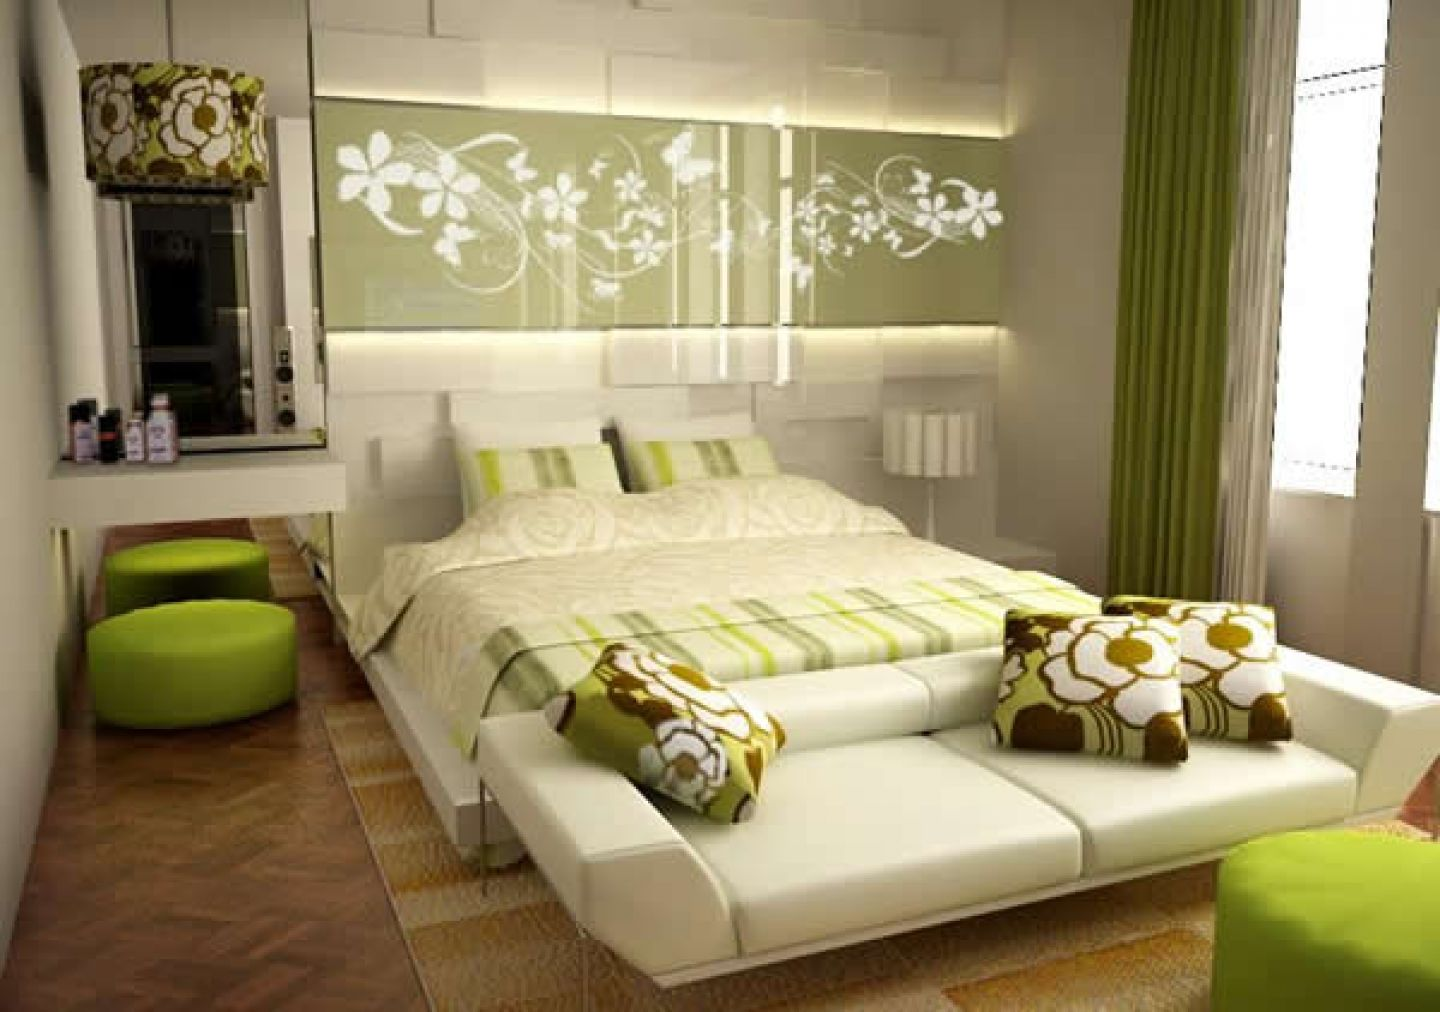 Bedroom decorating ideas feature wall - For Green Living Rooms Interior Design Ideas Rt